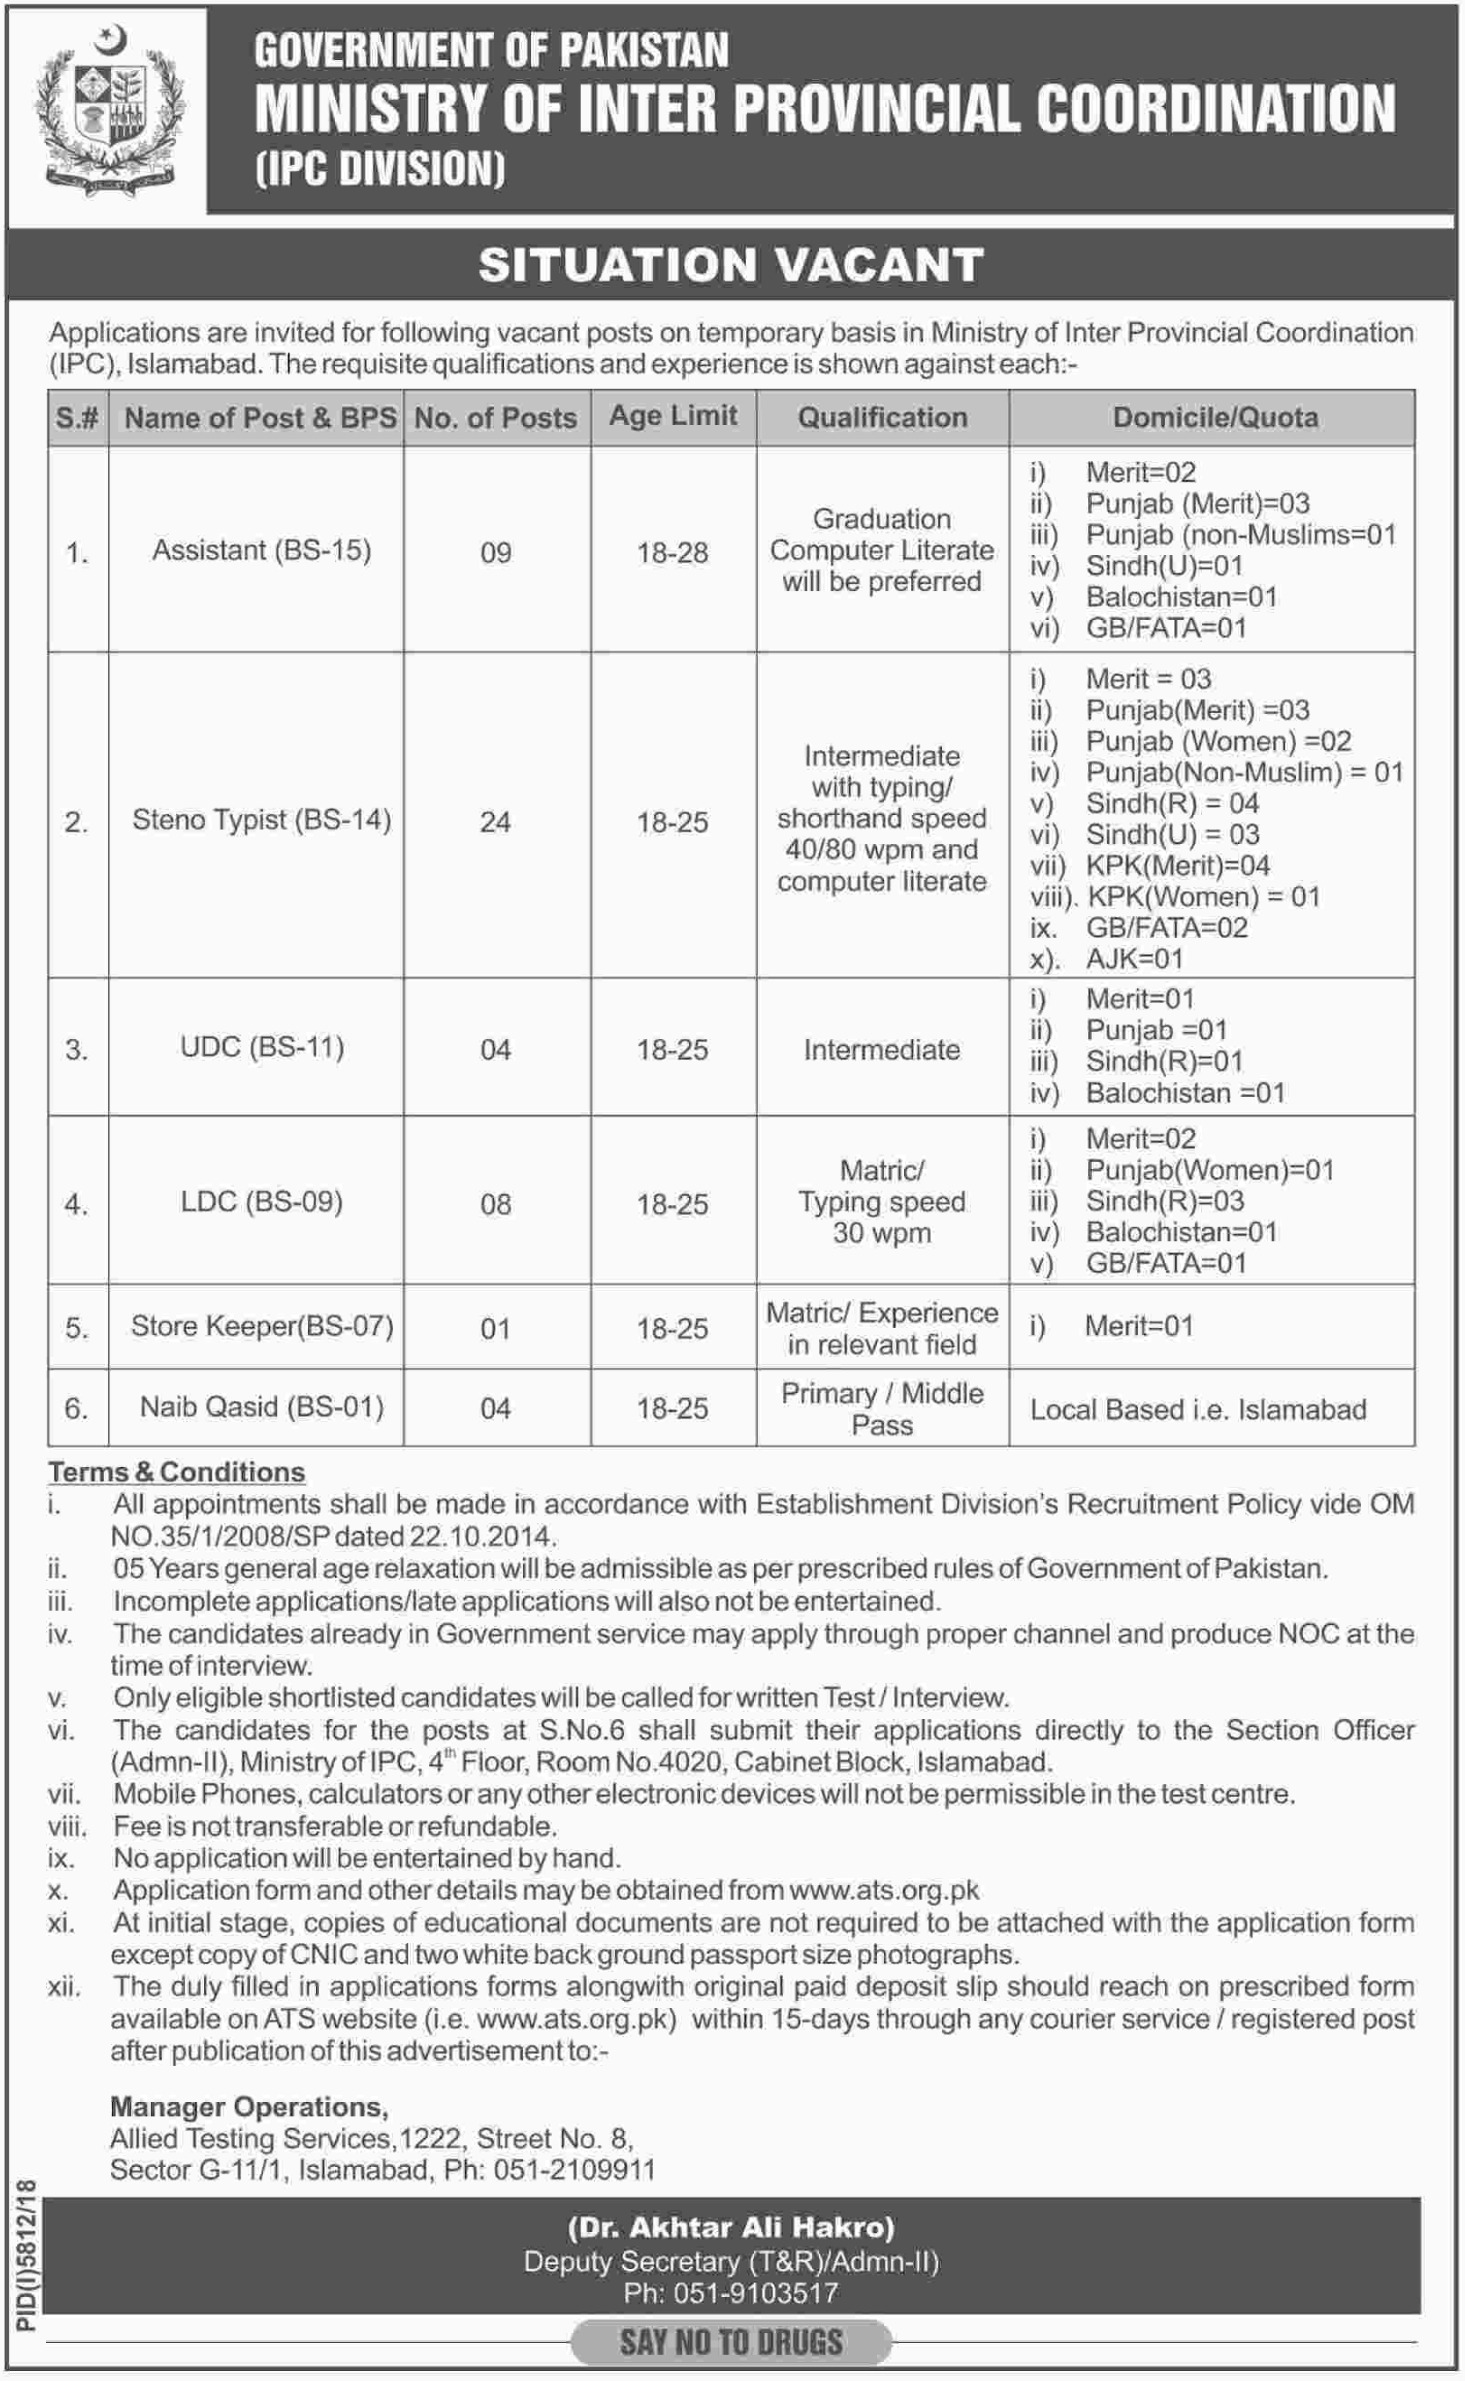 Ministry of Inter Provincial Coordination Jobs 2019 Apply through ATS